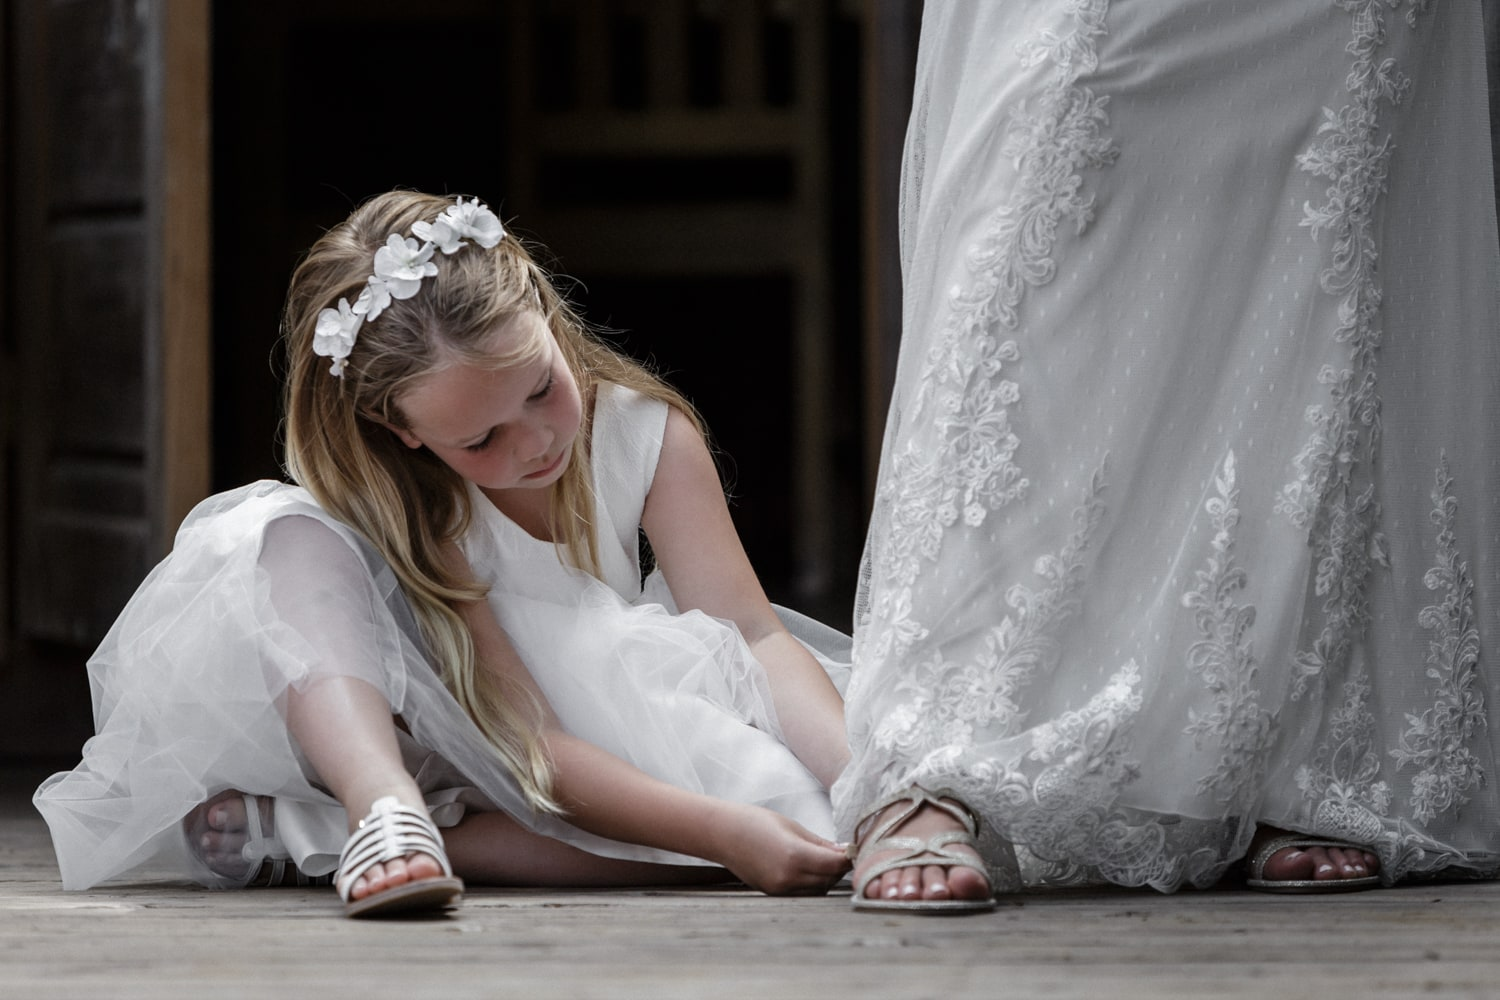 Flower girl helps bride prepare for her wedding day.